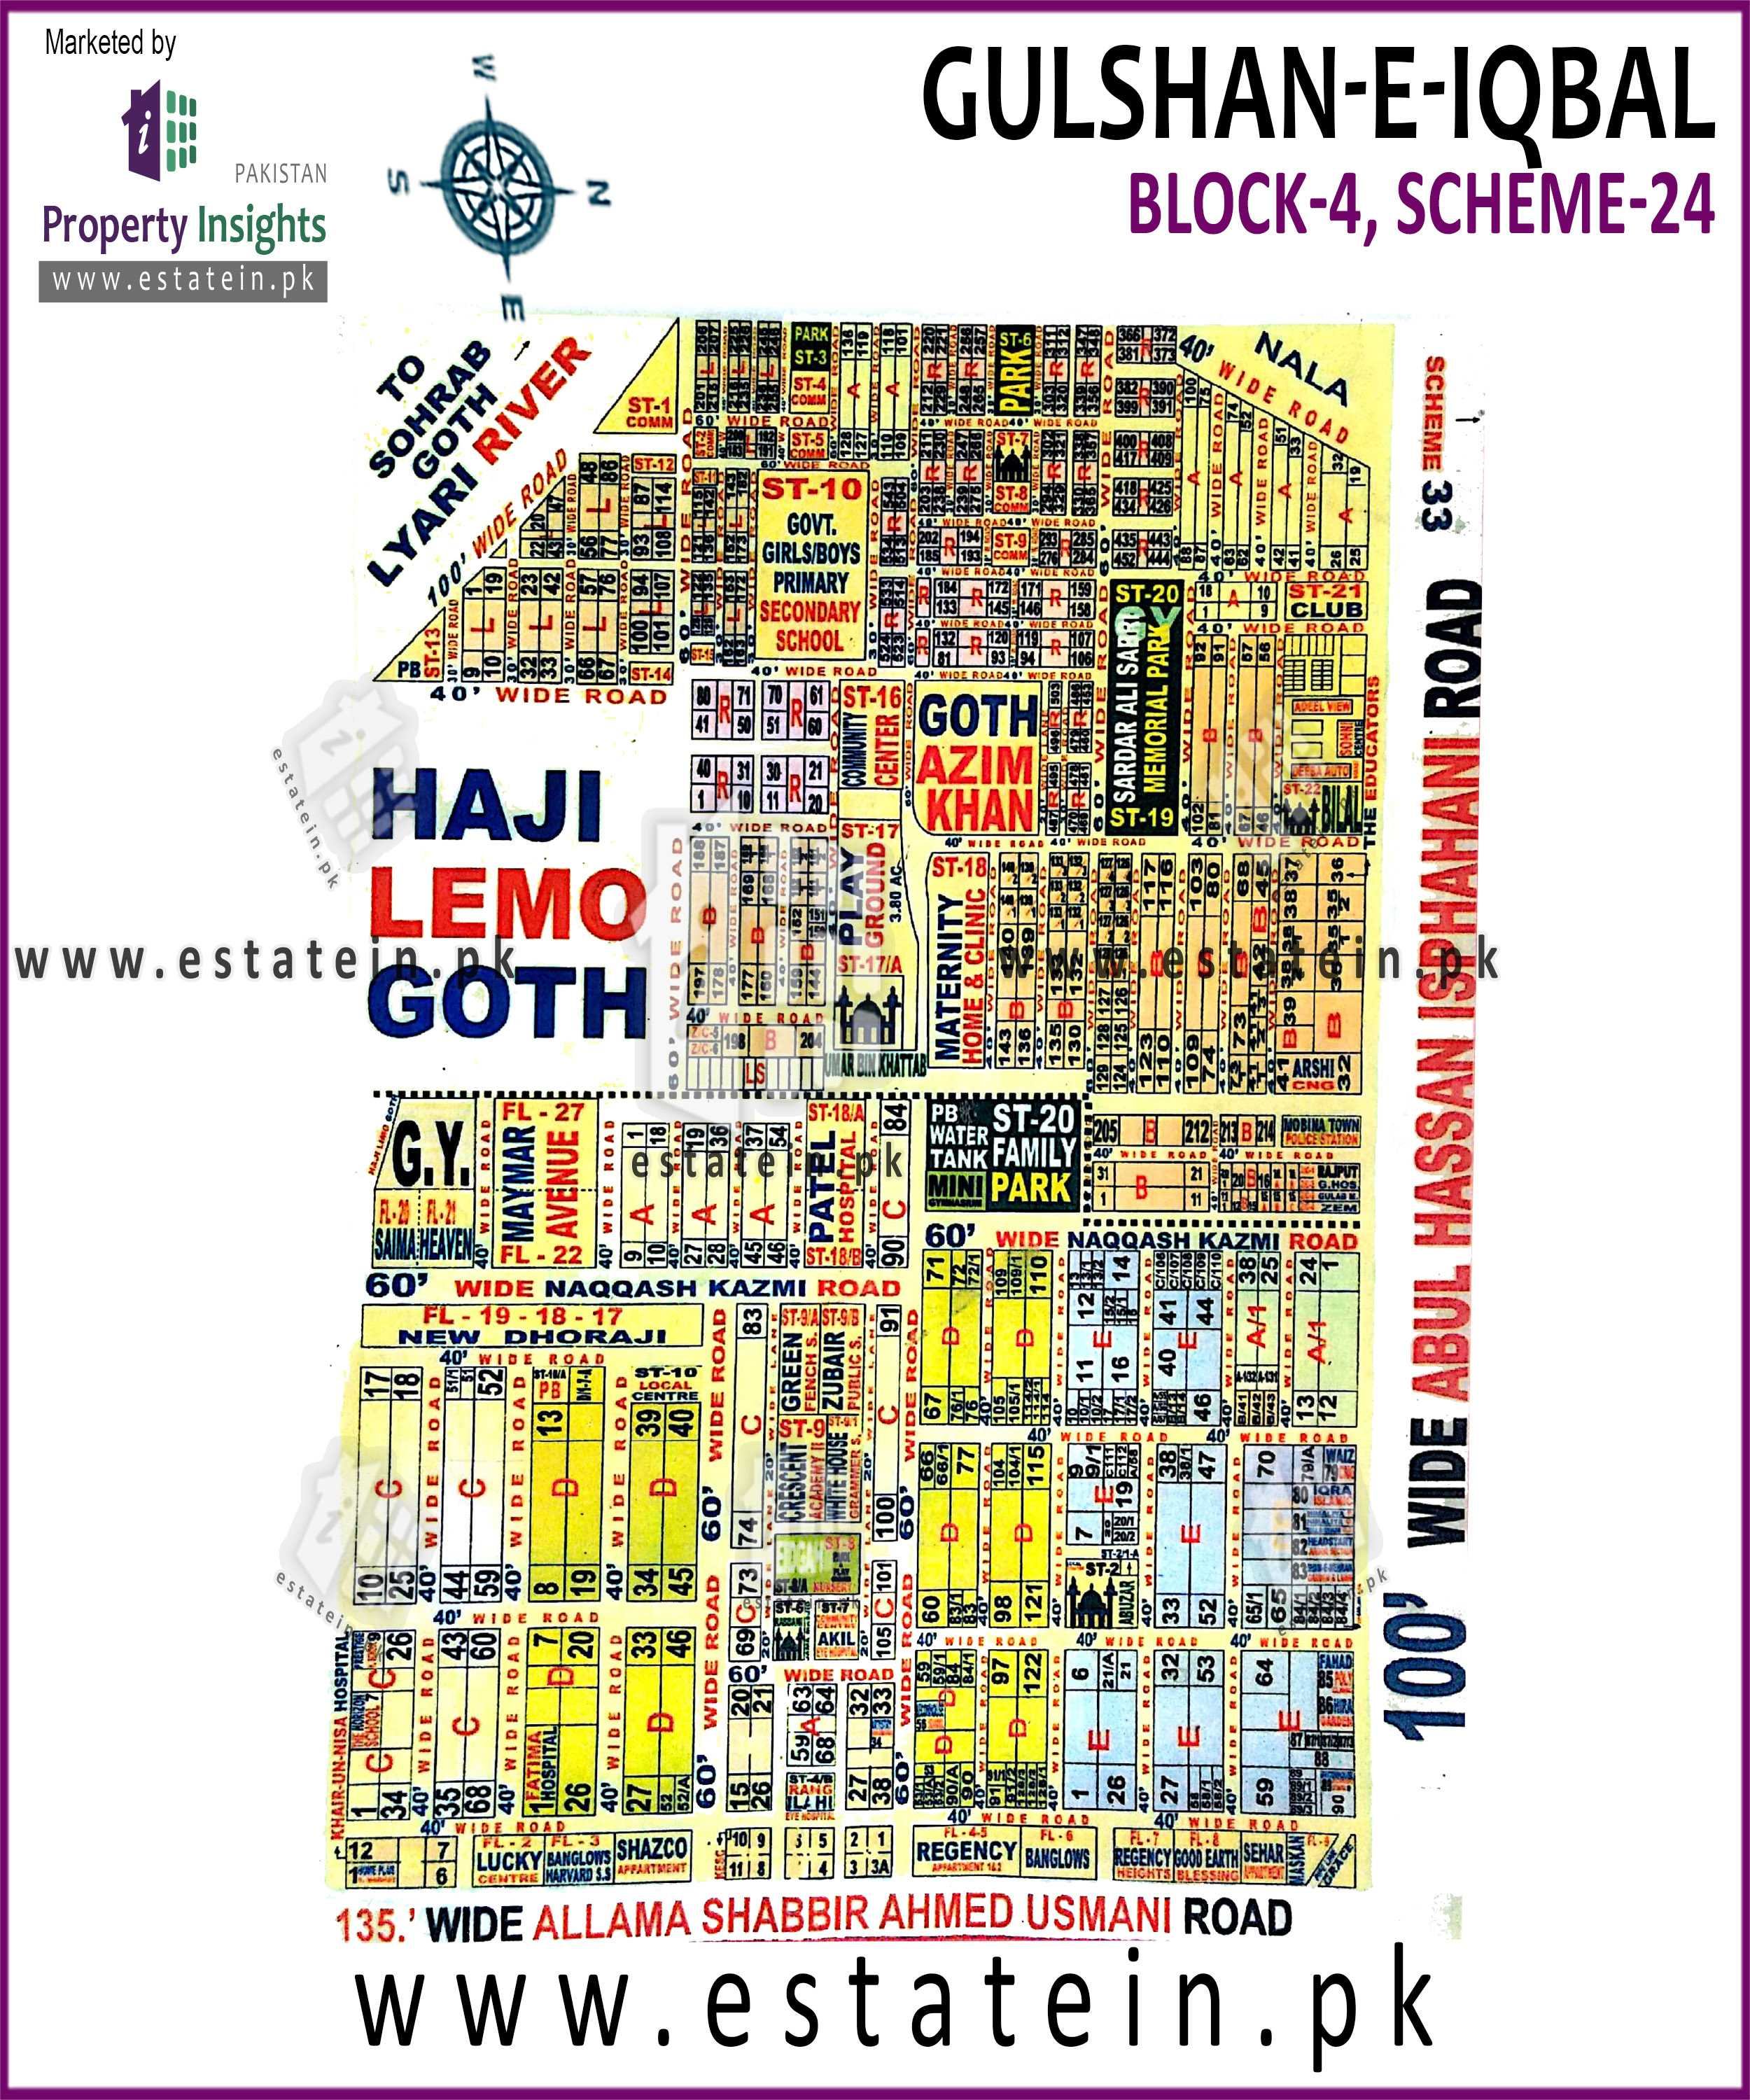 Site Plan of Block 4 of Gulshan-e-Iqbal Block-4